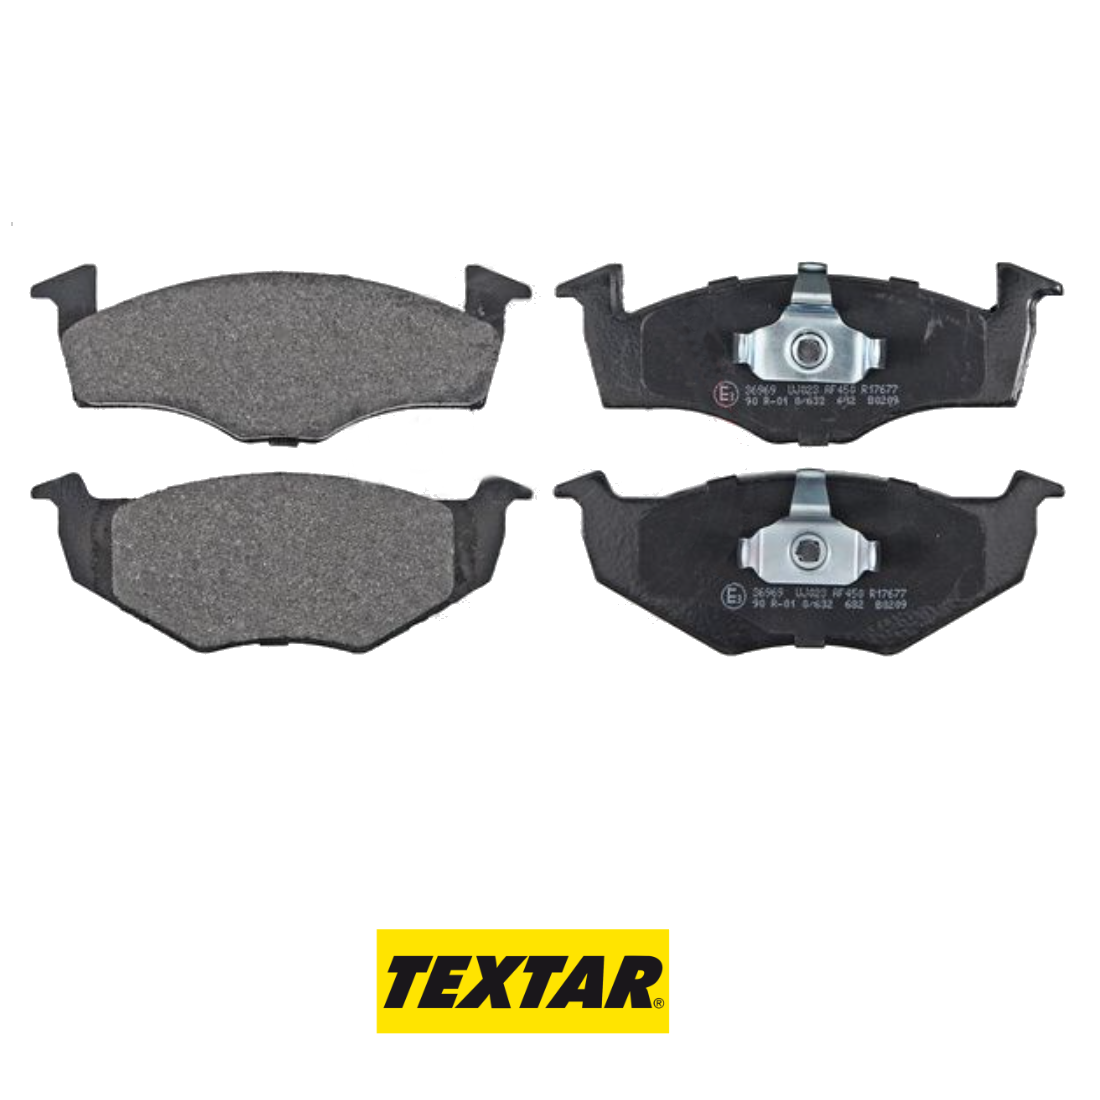 FRONT BRAKE PADS SERIES KIT SEAT - SKODA - VW TEXTAR 2186602